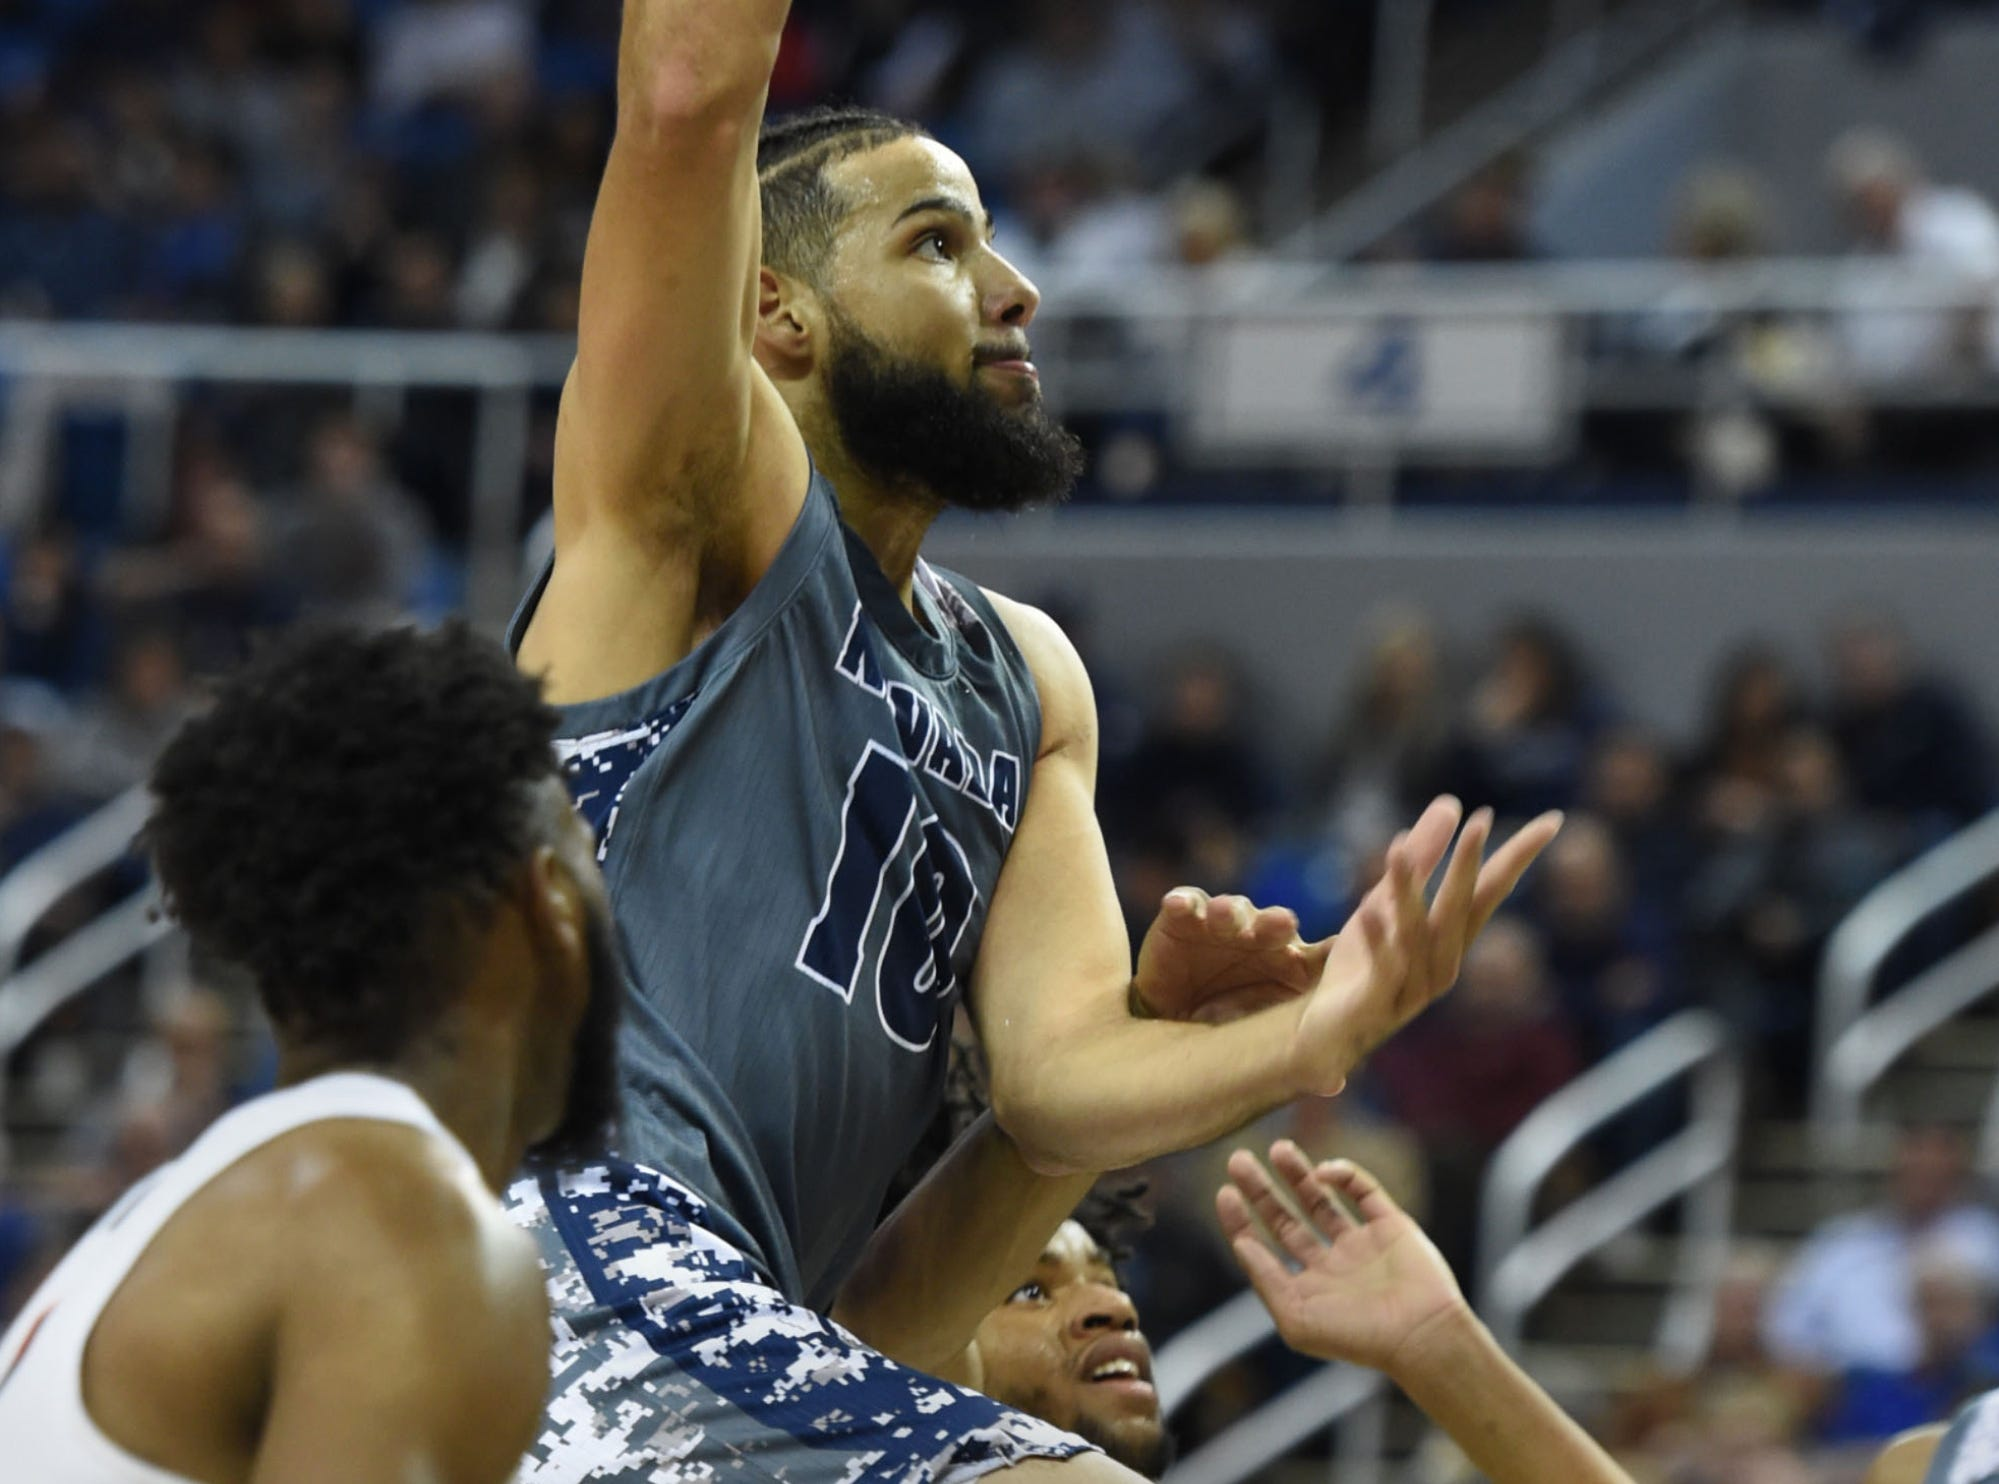 Nevada's Caleb Martin goes up to score against the Pacific Tigers at Lawlor Events Center on Saturday Nov. 10, 2018.